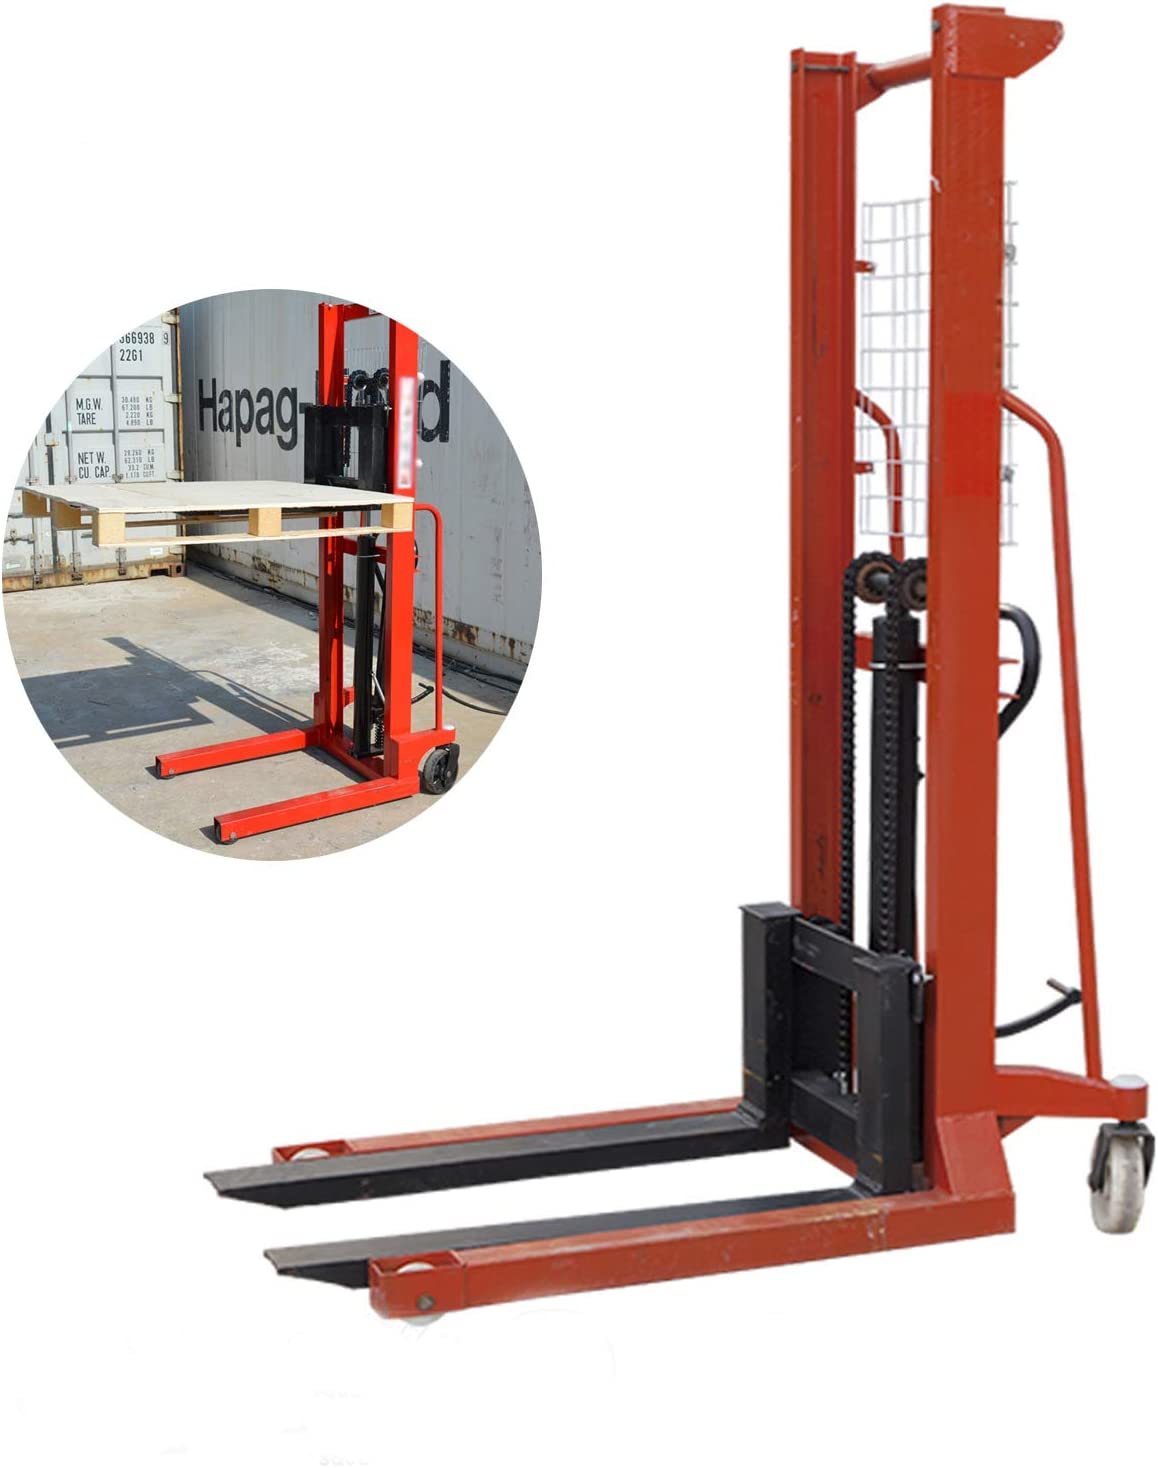 TECHTONGDA Manual Stacker Hand Pump Inventory cleanup selling sale Capa Truck Lift with Virginia Beach Mall 2204lbs